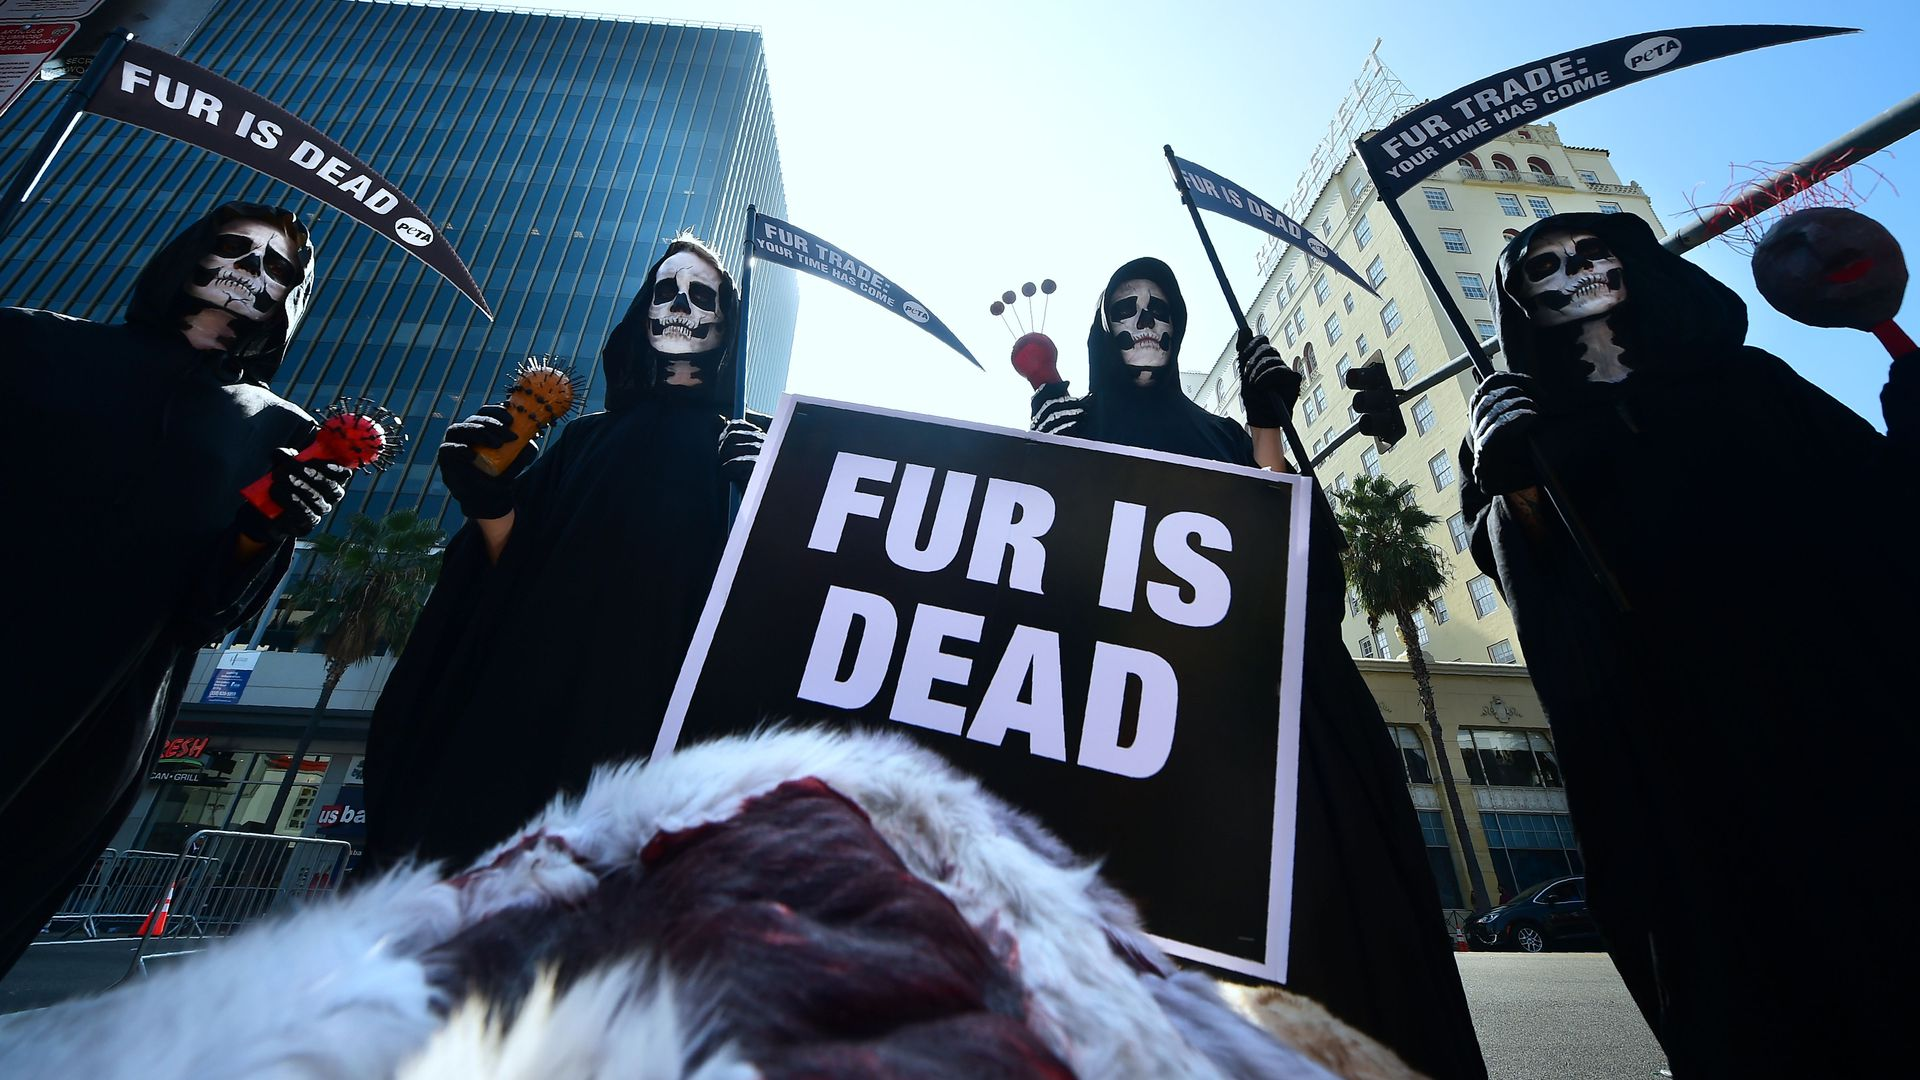 Black-robed PETA activists dressed as Grim Reapers hold a 'Fur is Dead' rally along Hollywood Boulevard on October 25, 2018 in Hollywood, California